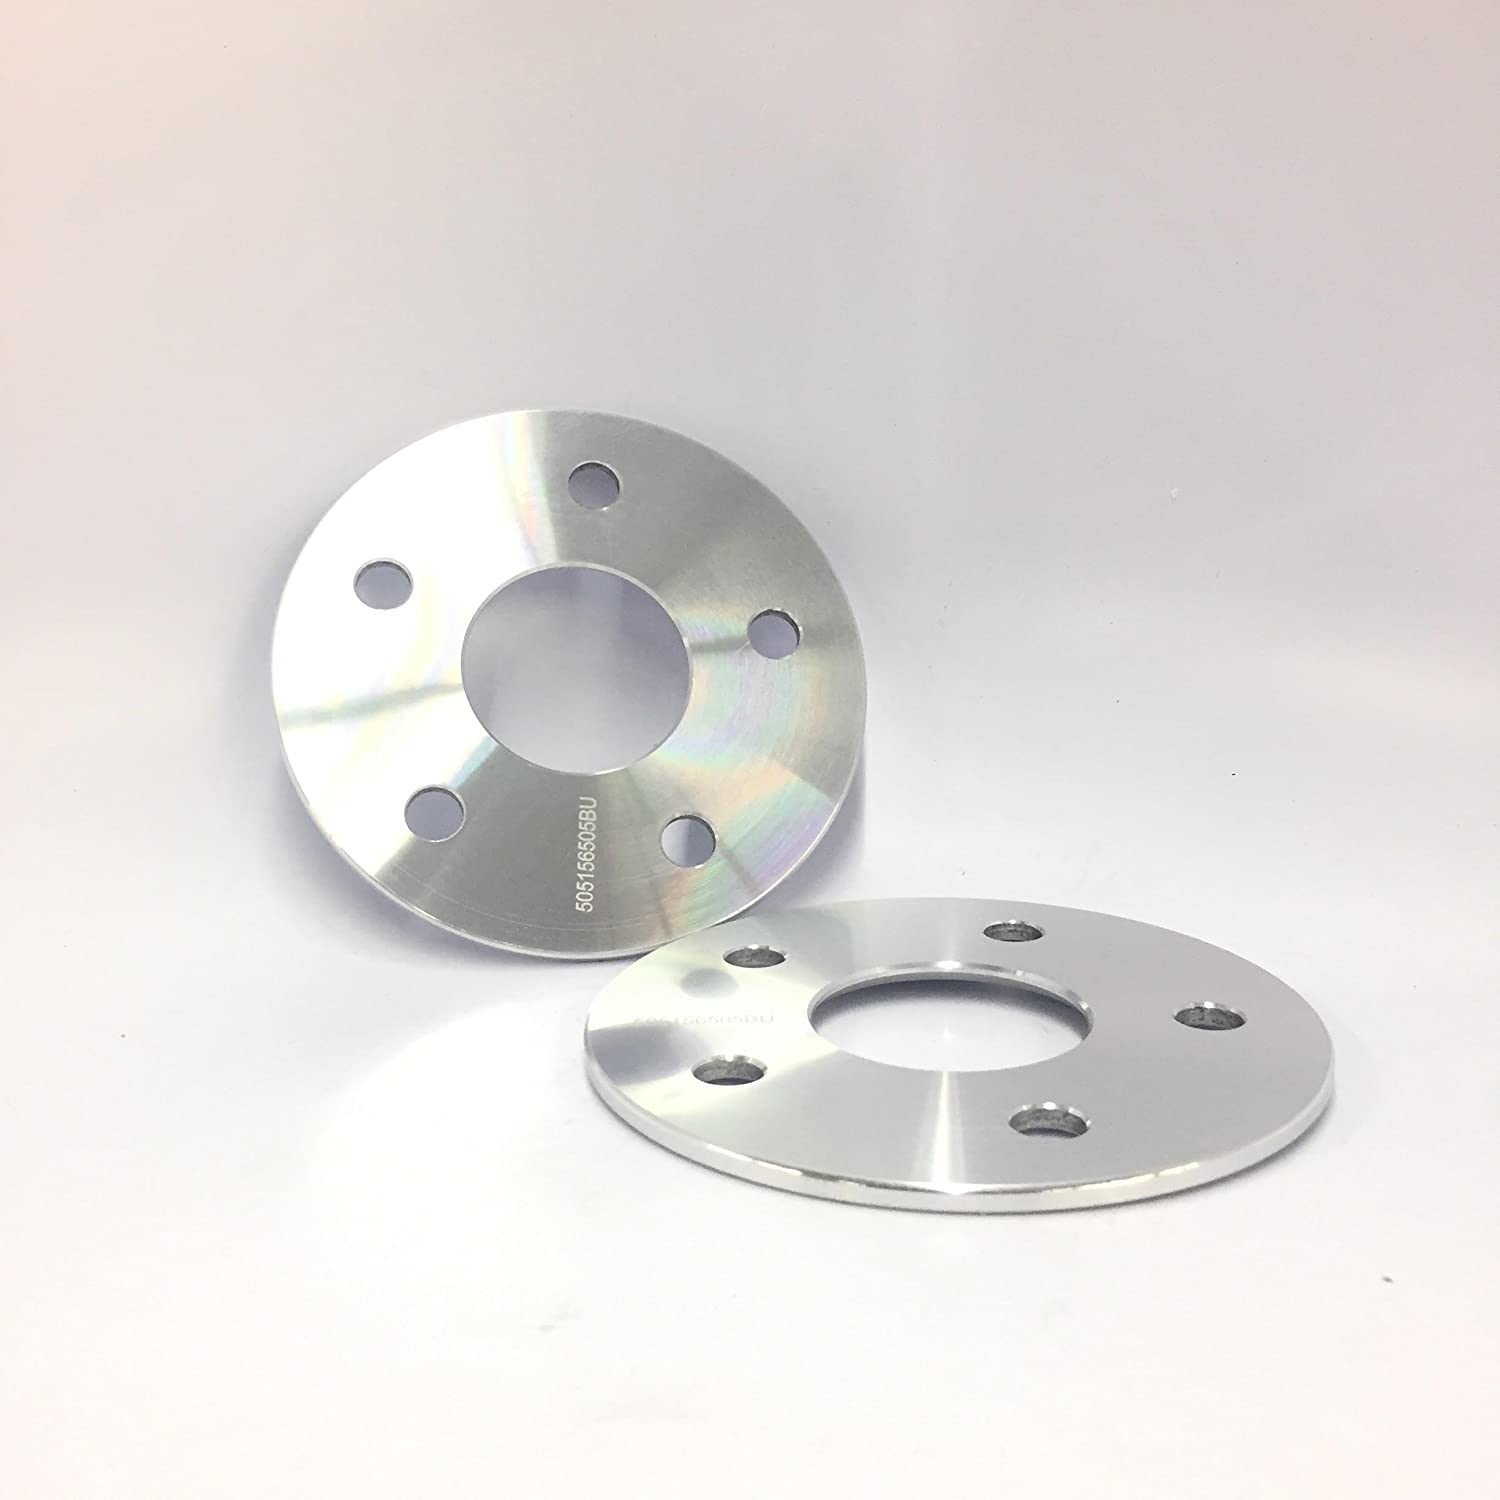 2 X 5mm ALLOY WHEEL SPACERS SHIMS M14X1.5 SILVER BOLTS AUDI A3 A4 A6 5X112